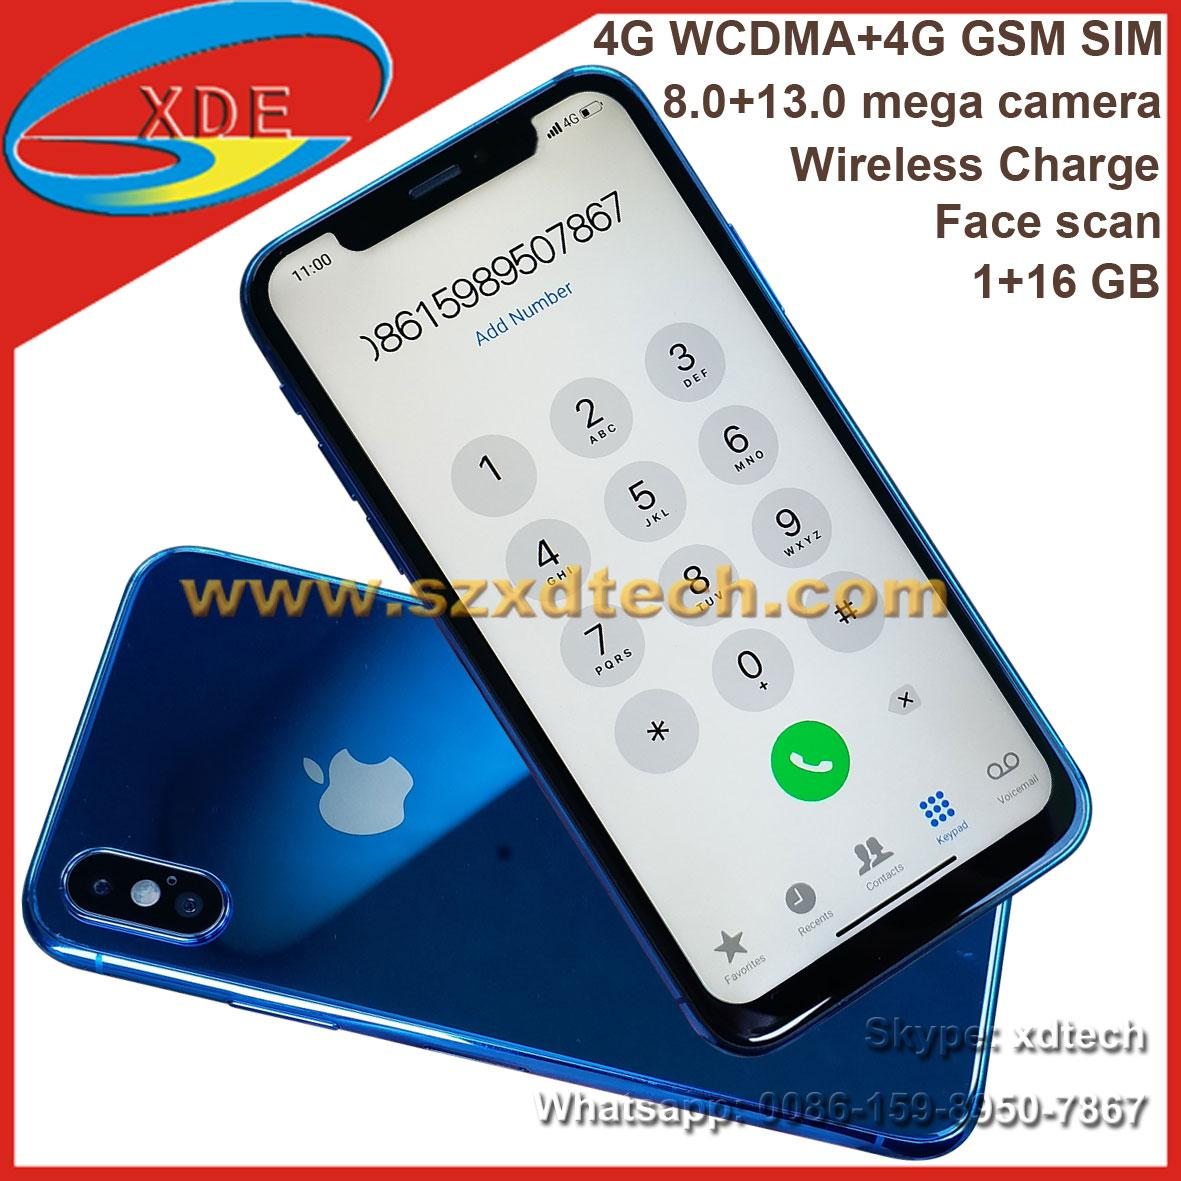 Replica IPhone X Real 11 Screen Wireless Charge Face Scan 4G Fast 1